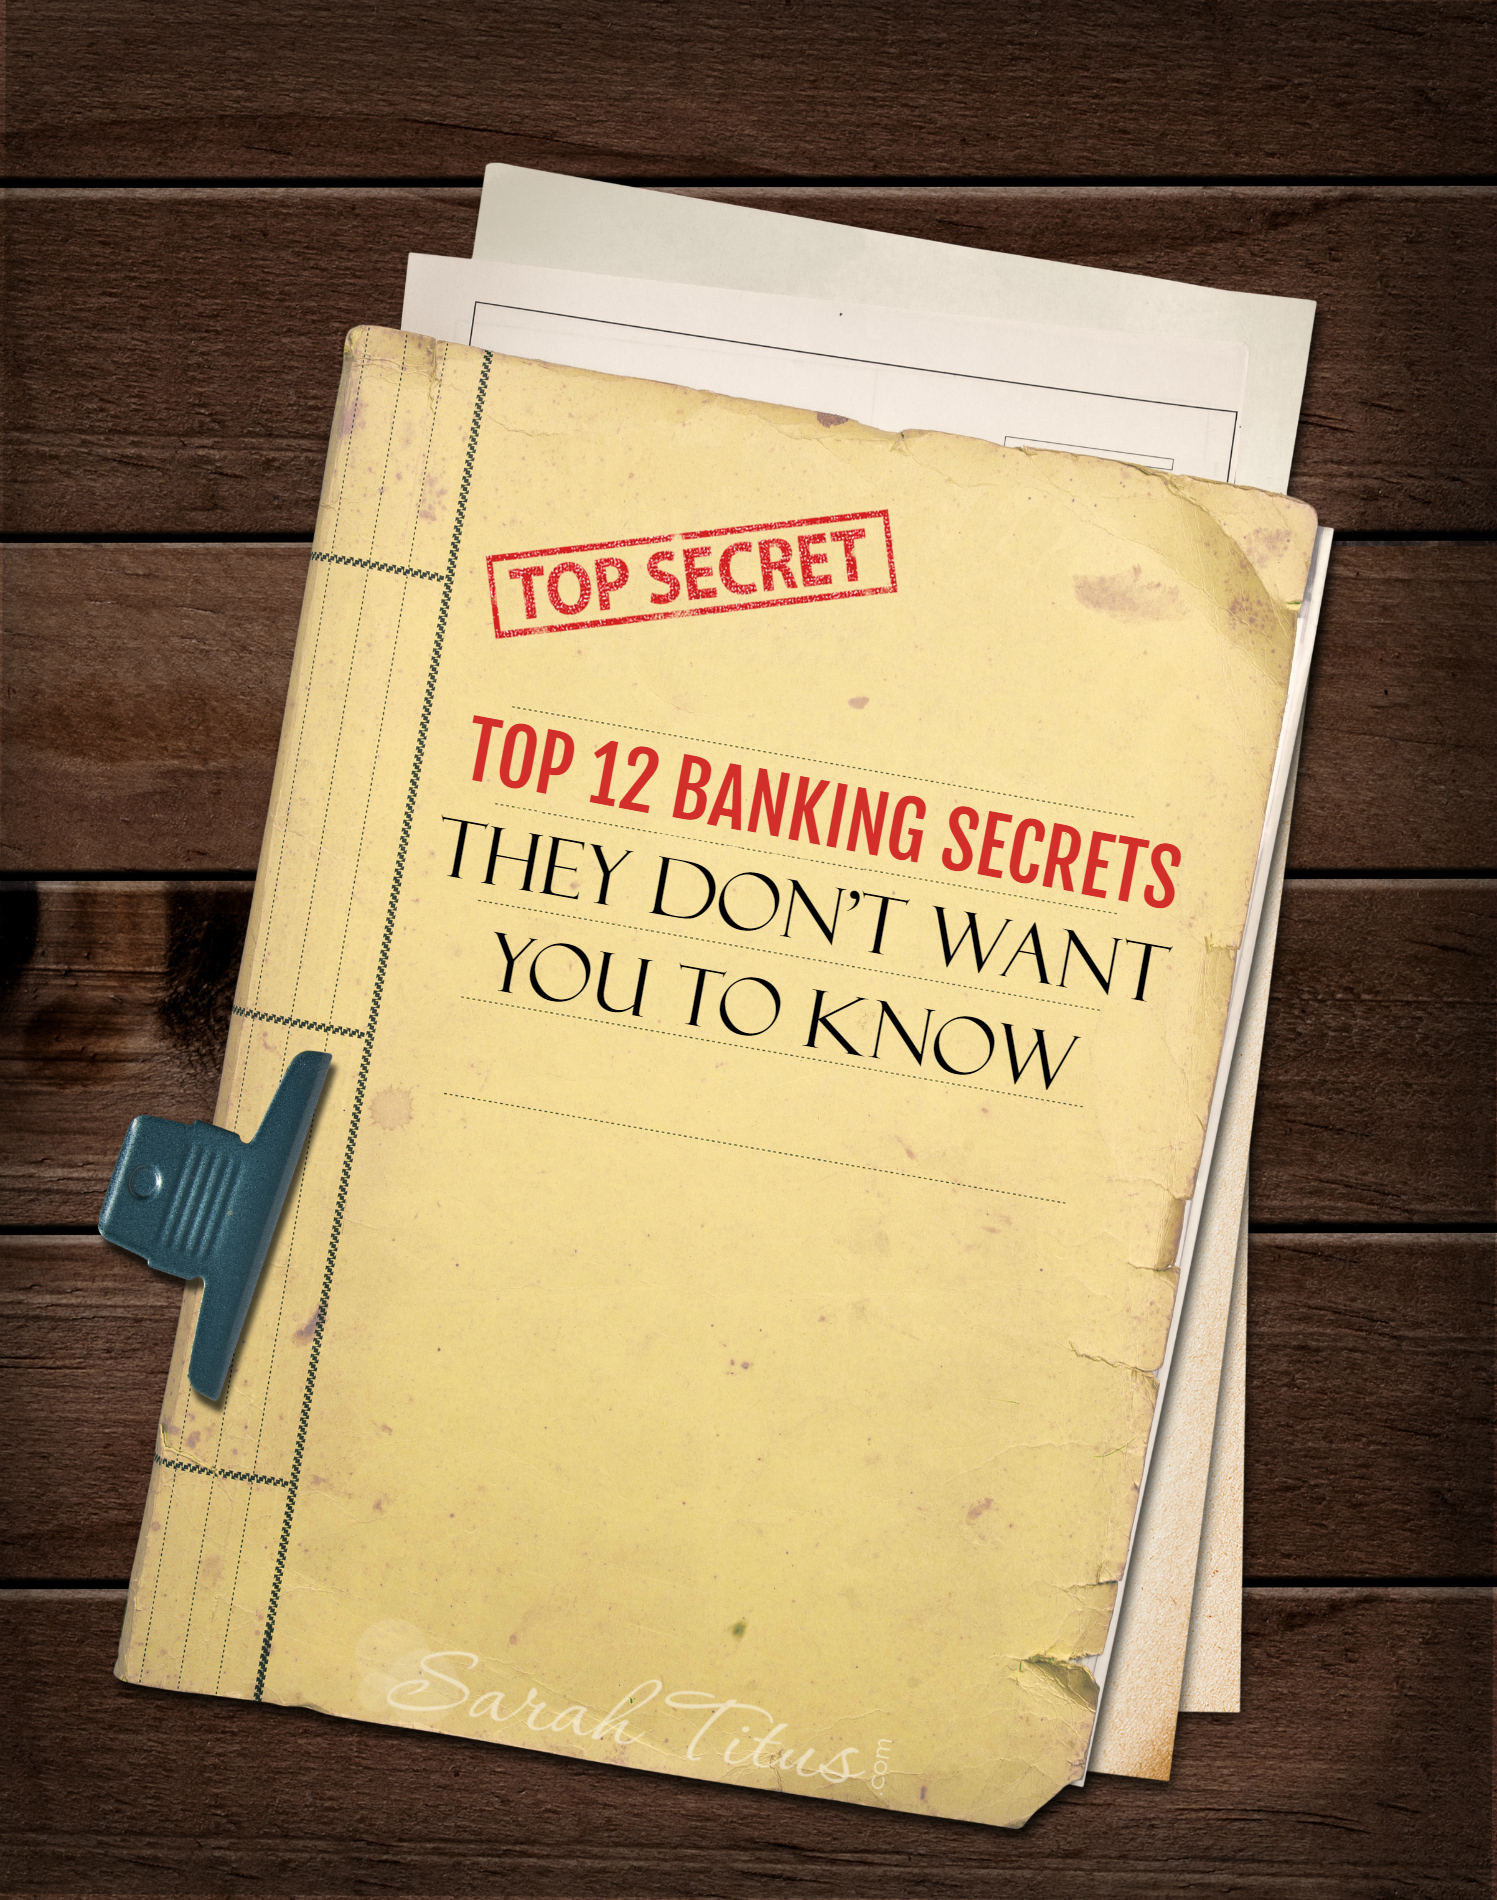 Top 12 Banking Secrets They Don't Want You to Know